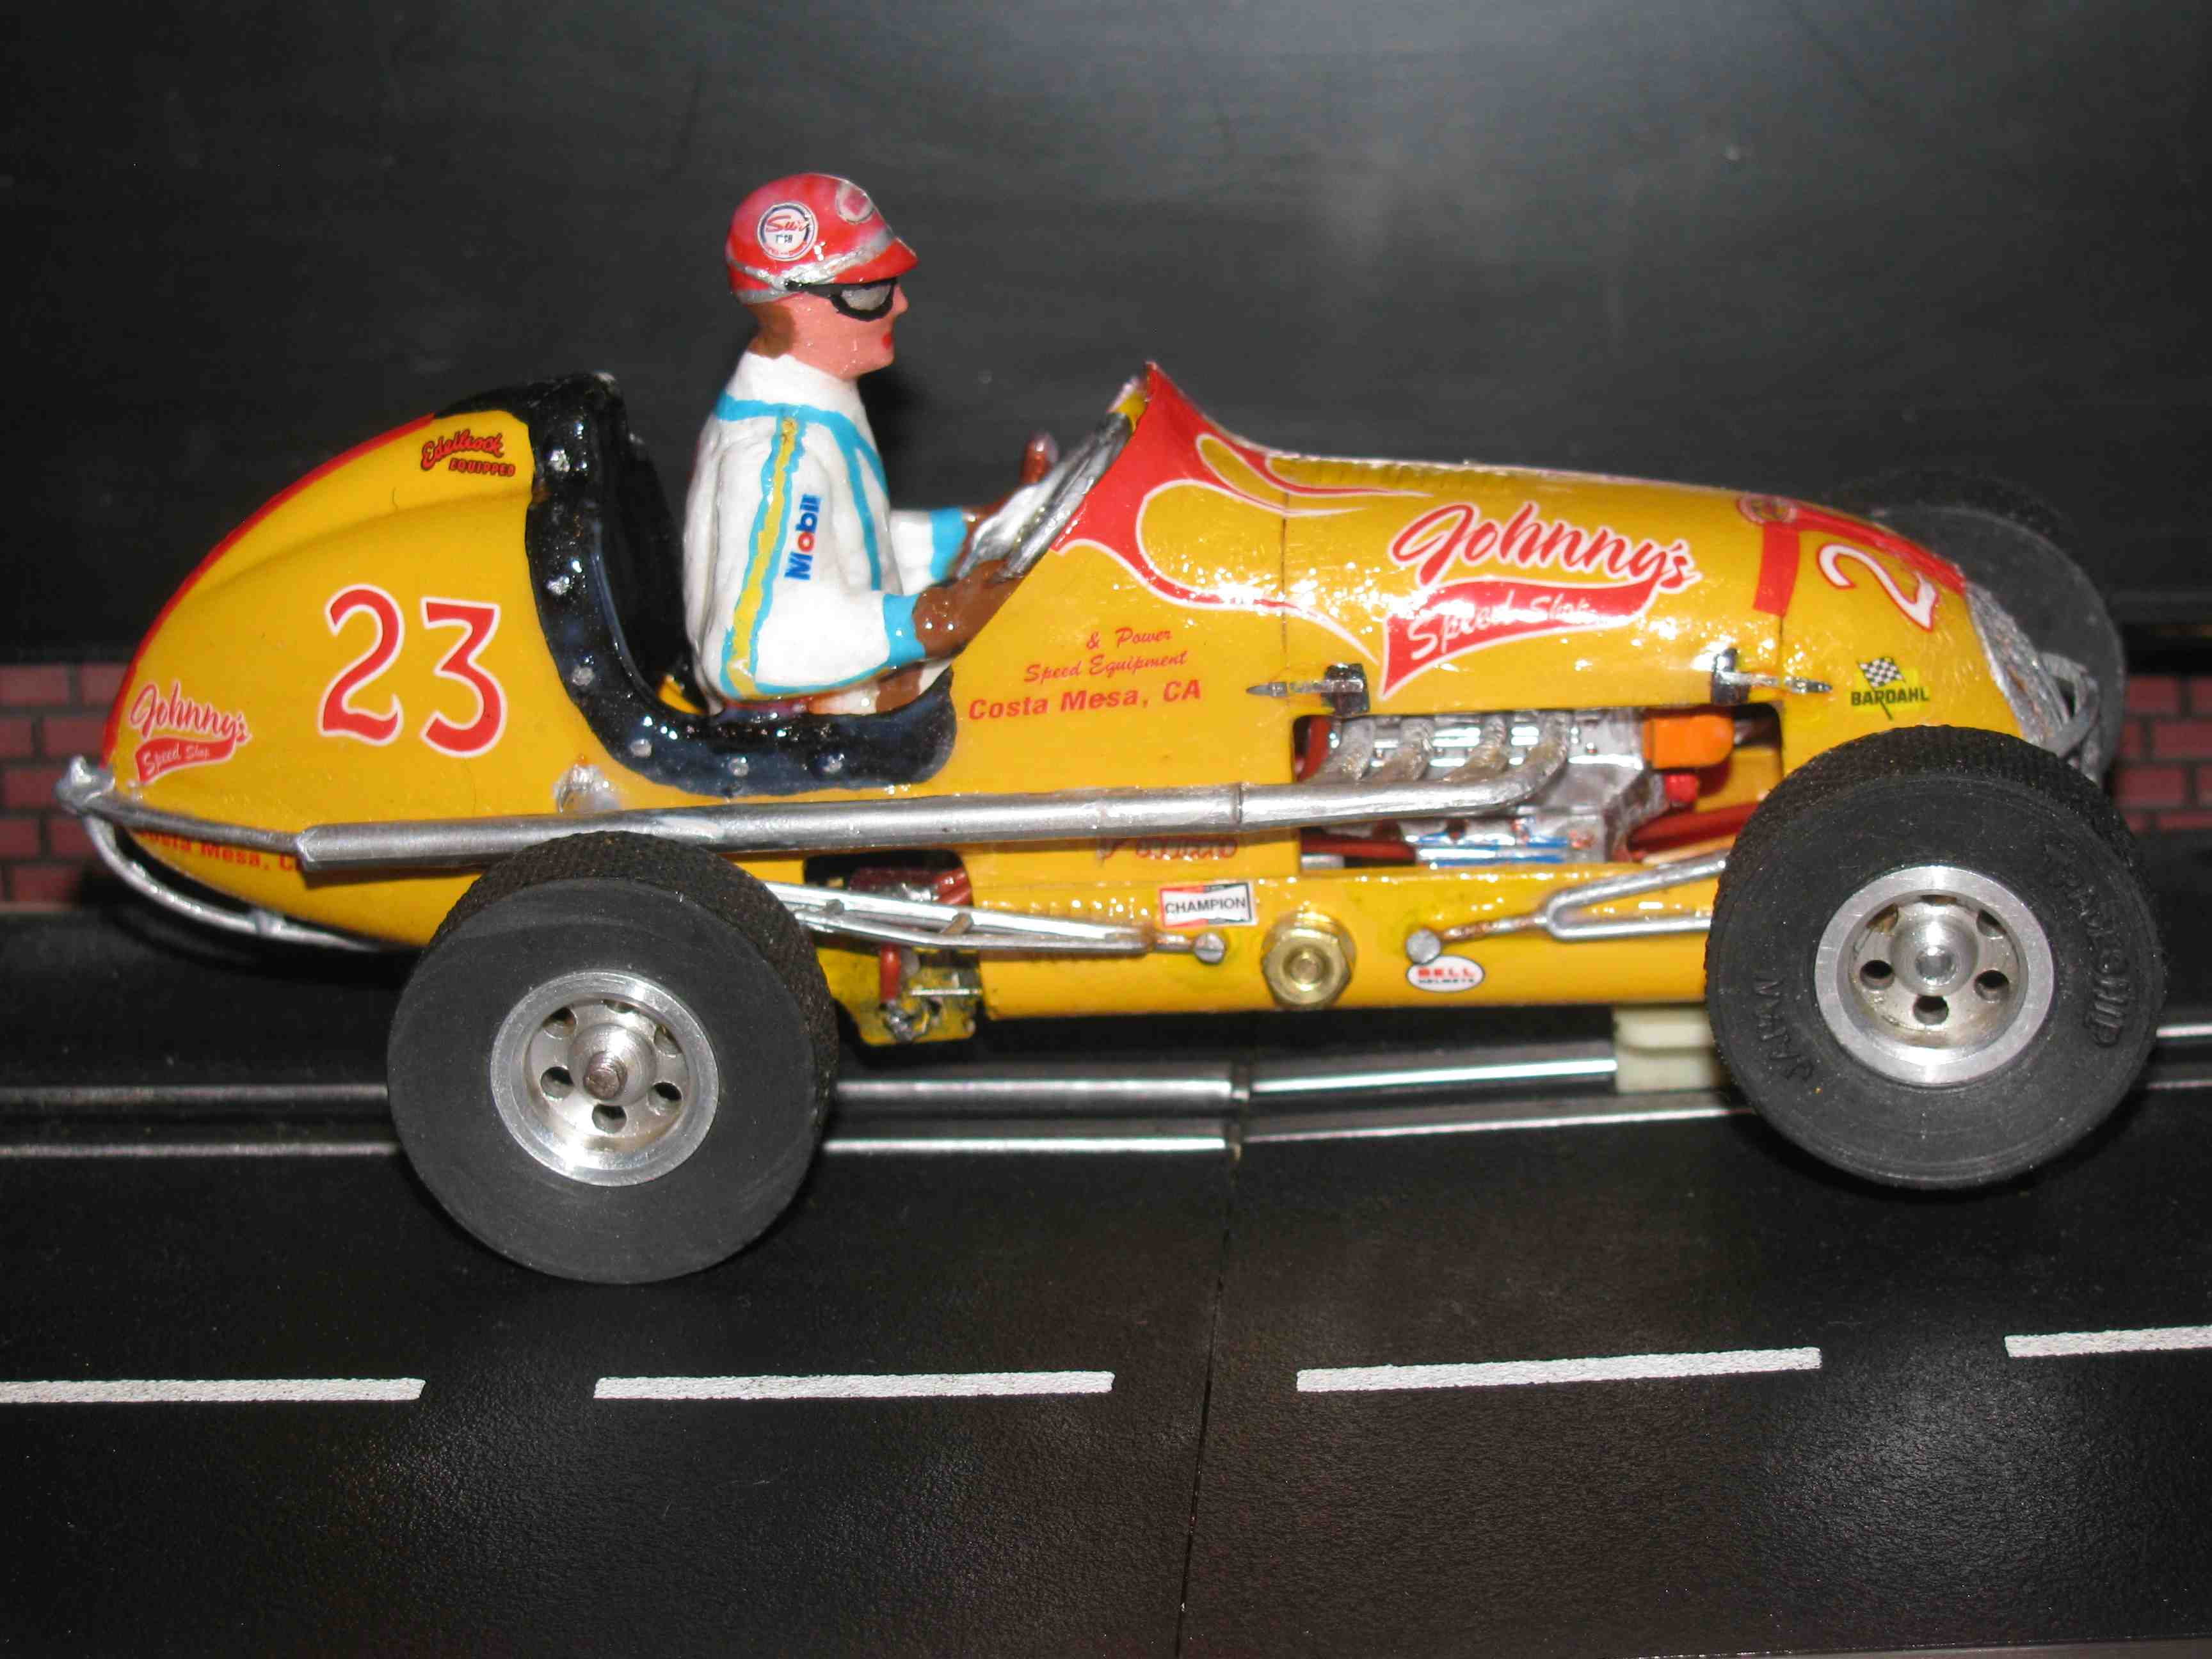 "* SOLD * Vintage Revell Midget Racer ""Johnnys Speed Shop"" Slot Car 1/24 Scale – Yellow – Car 23"